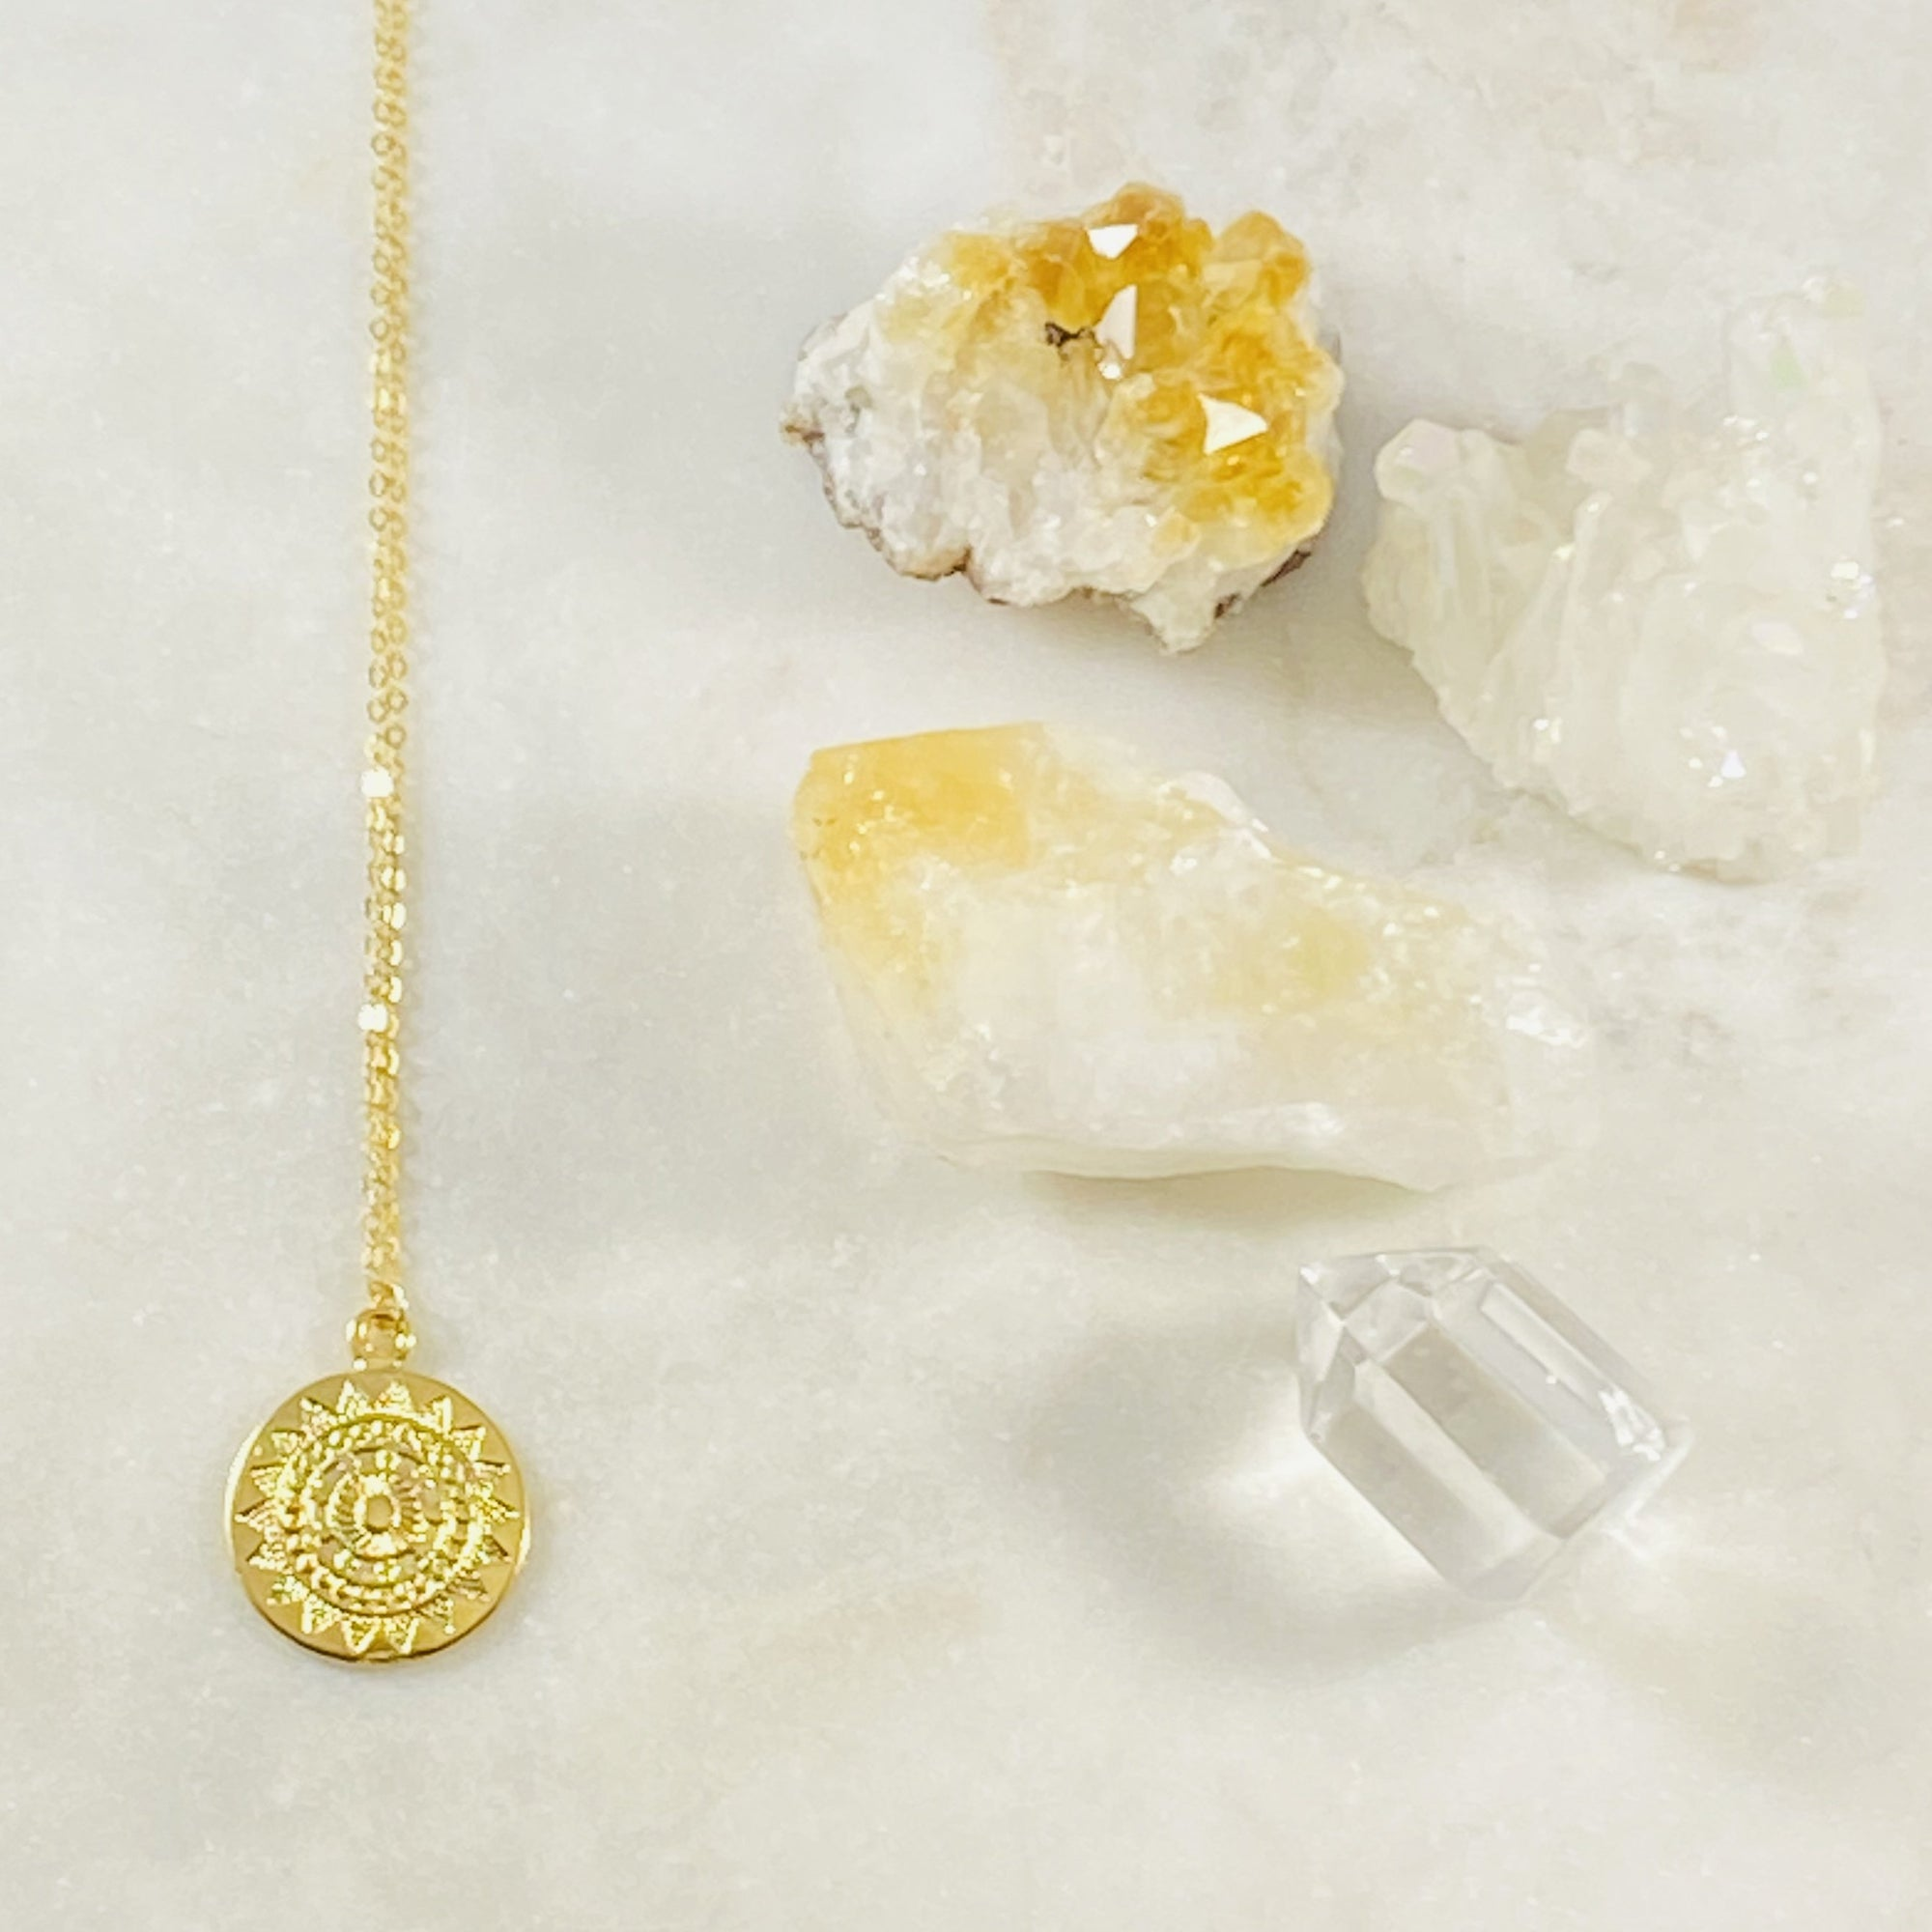 Mandala Sun Charm Necklace